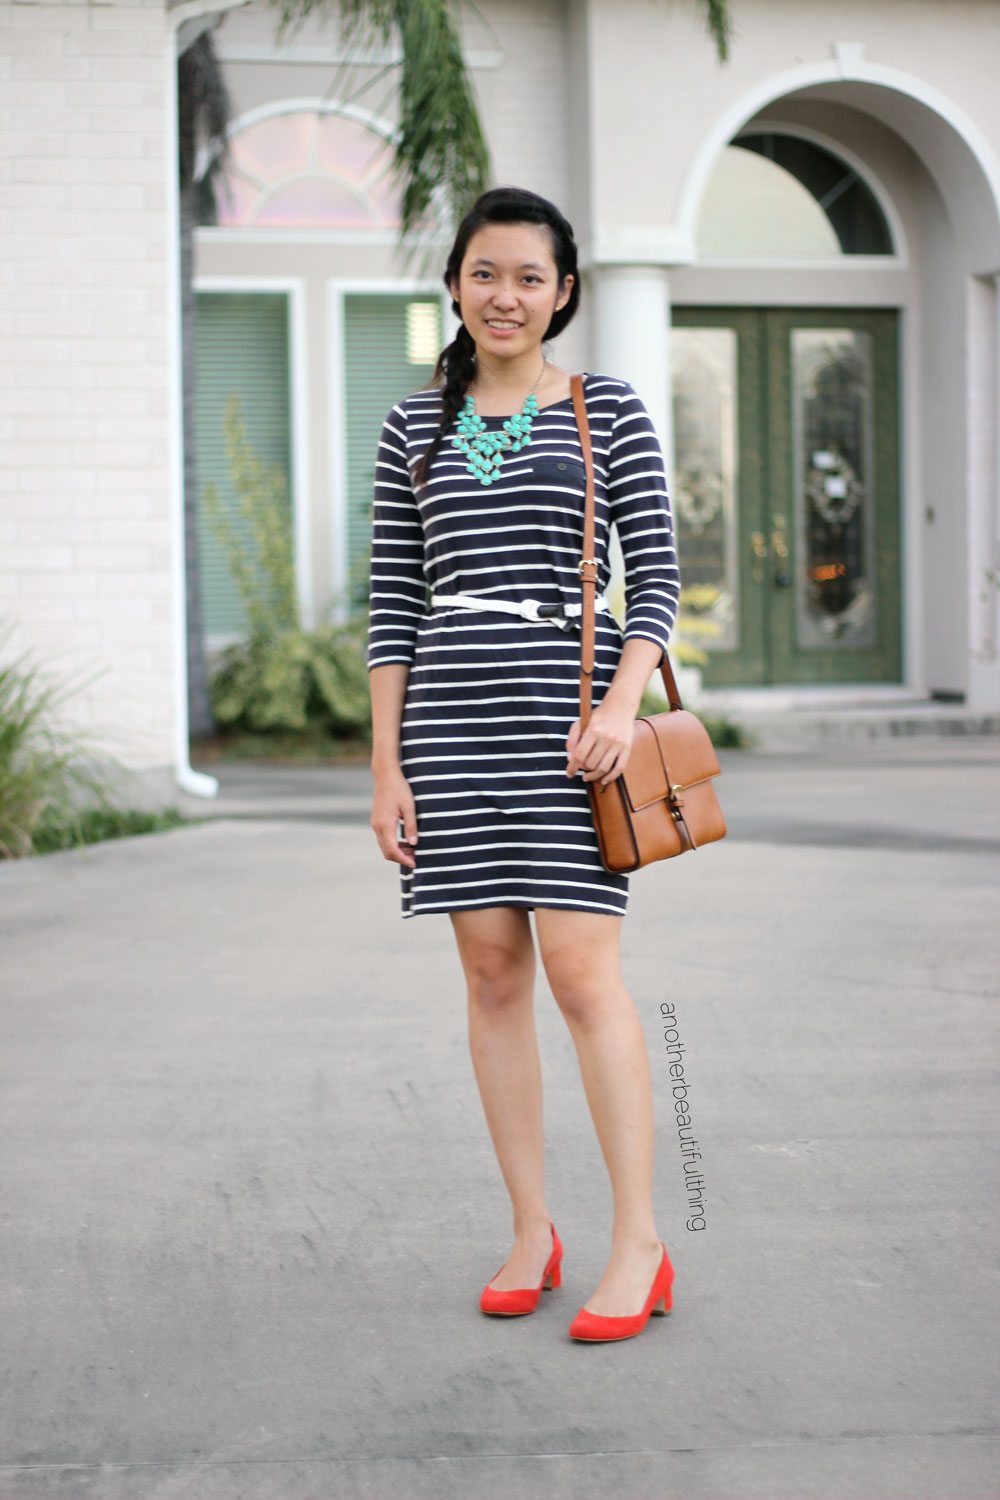 Casual t-shirt dress look with fiery shoes and turquoise necklace